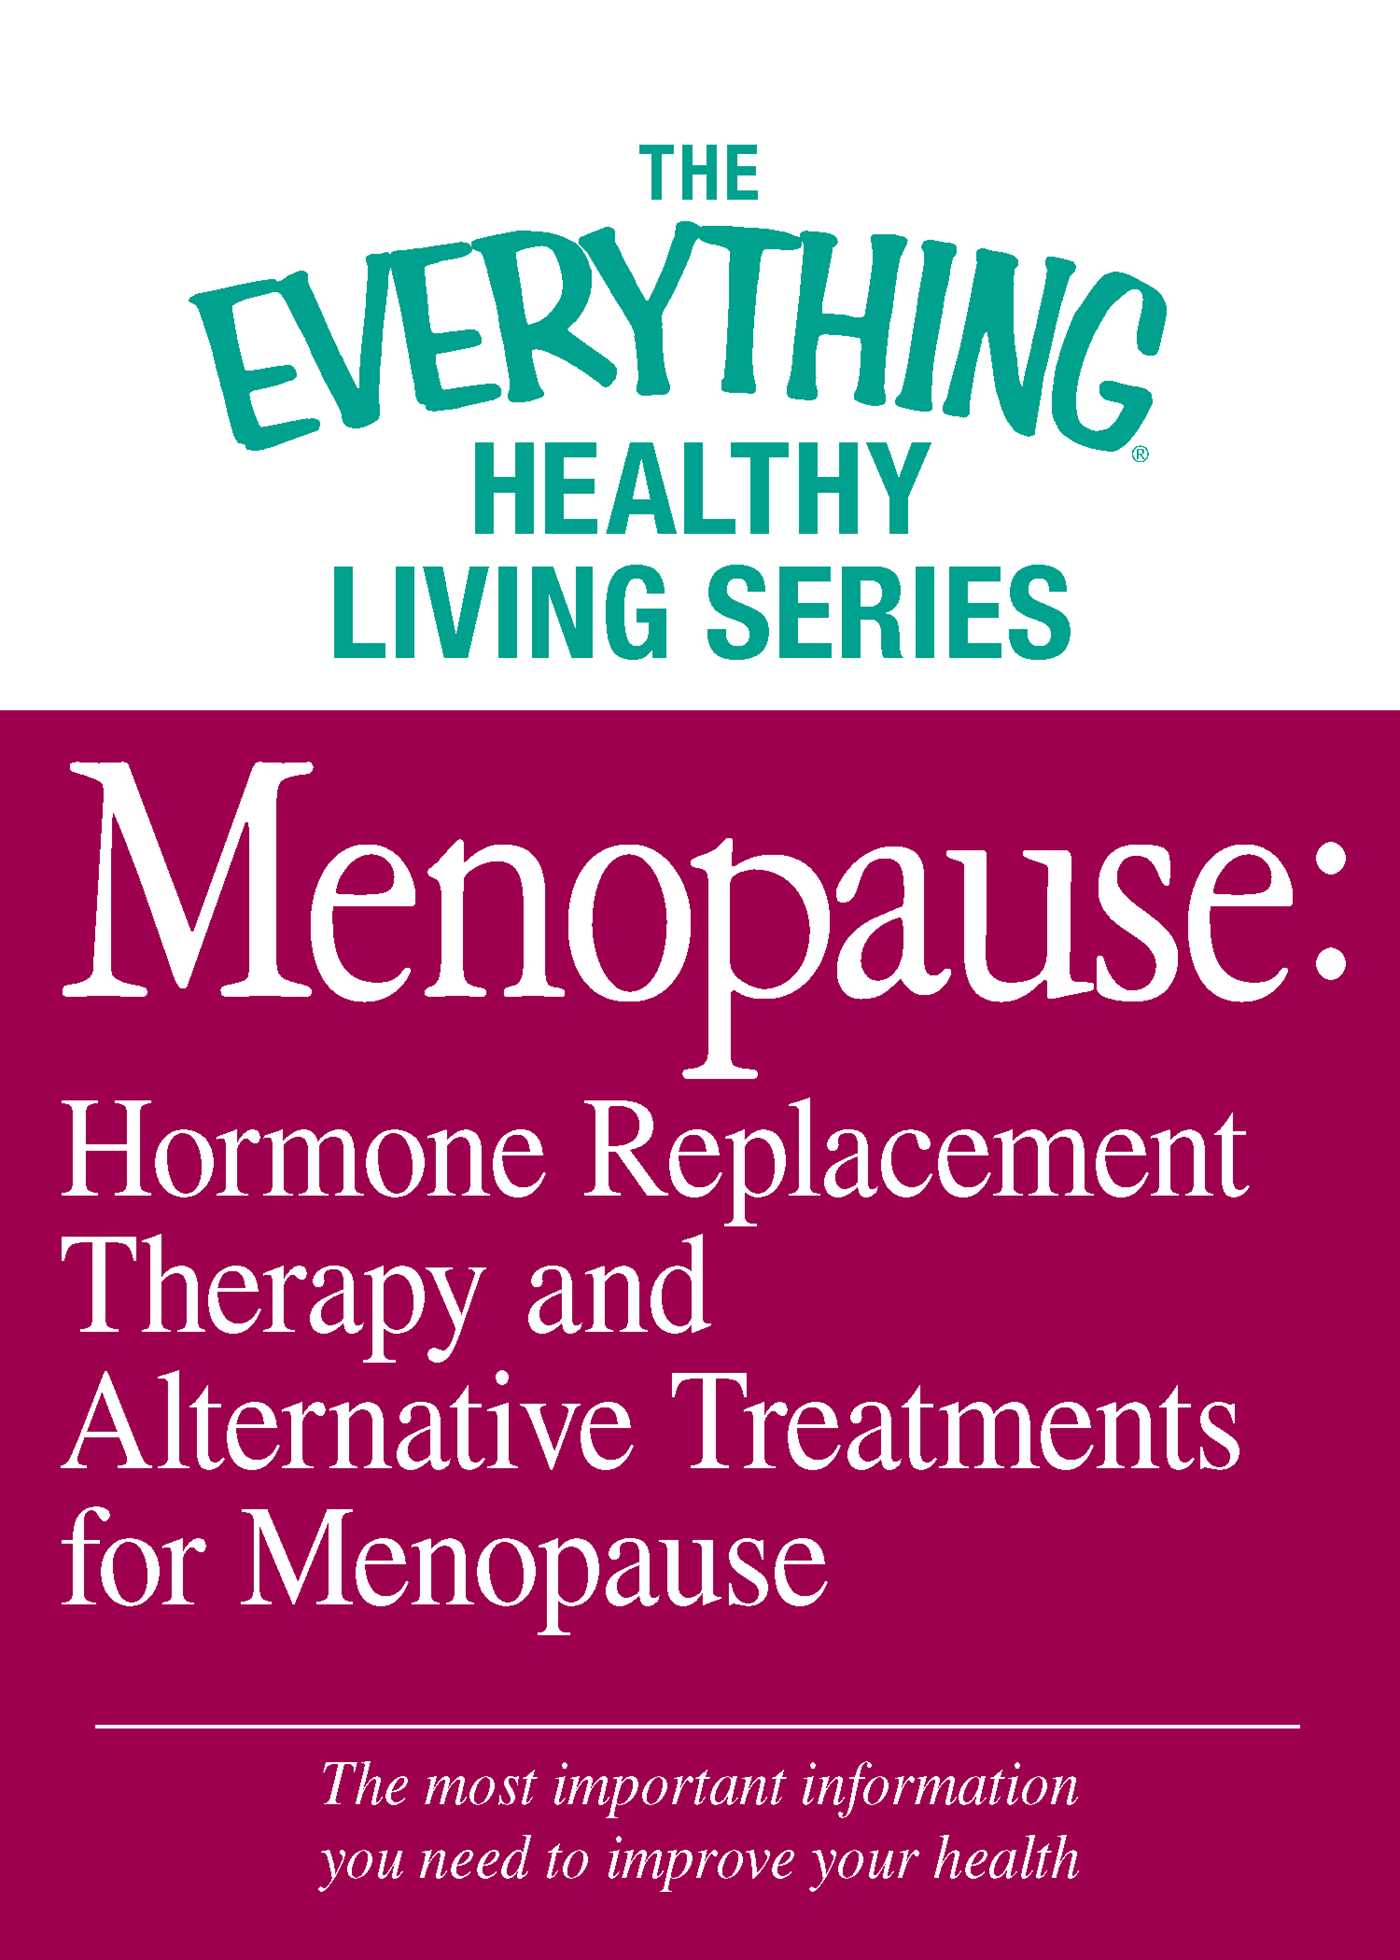 Menopause hormone replacement therapy and alternative treatments for menopause 9781440561733 hr